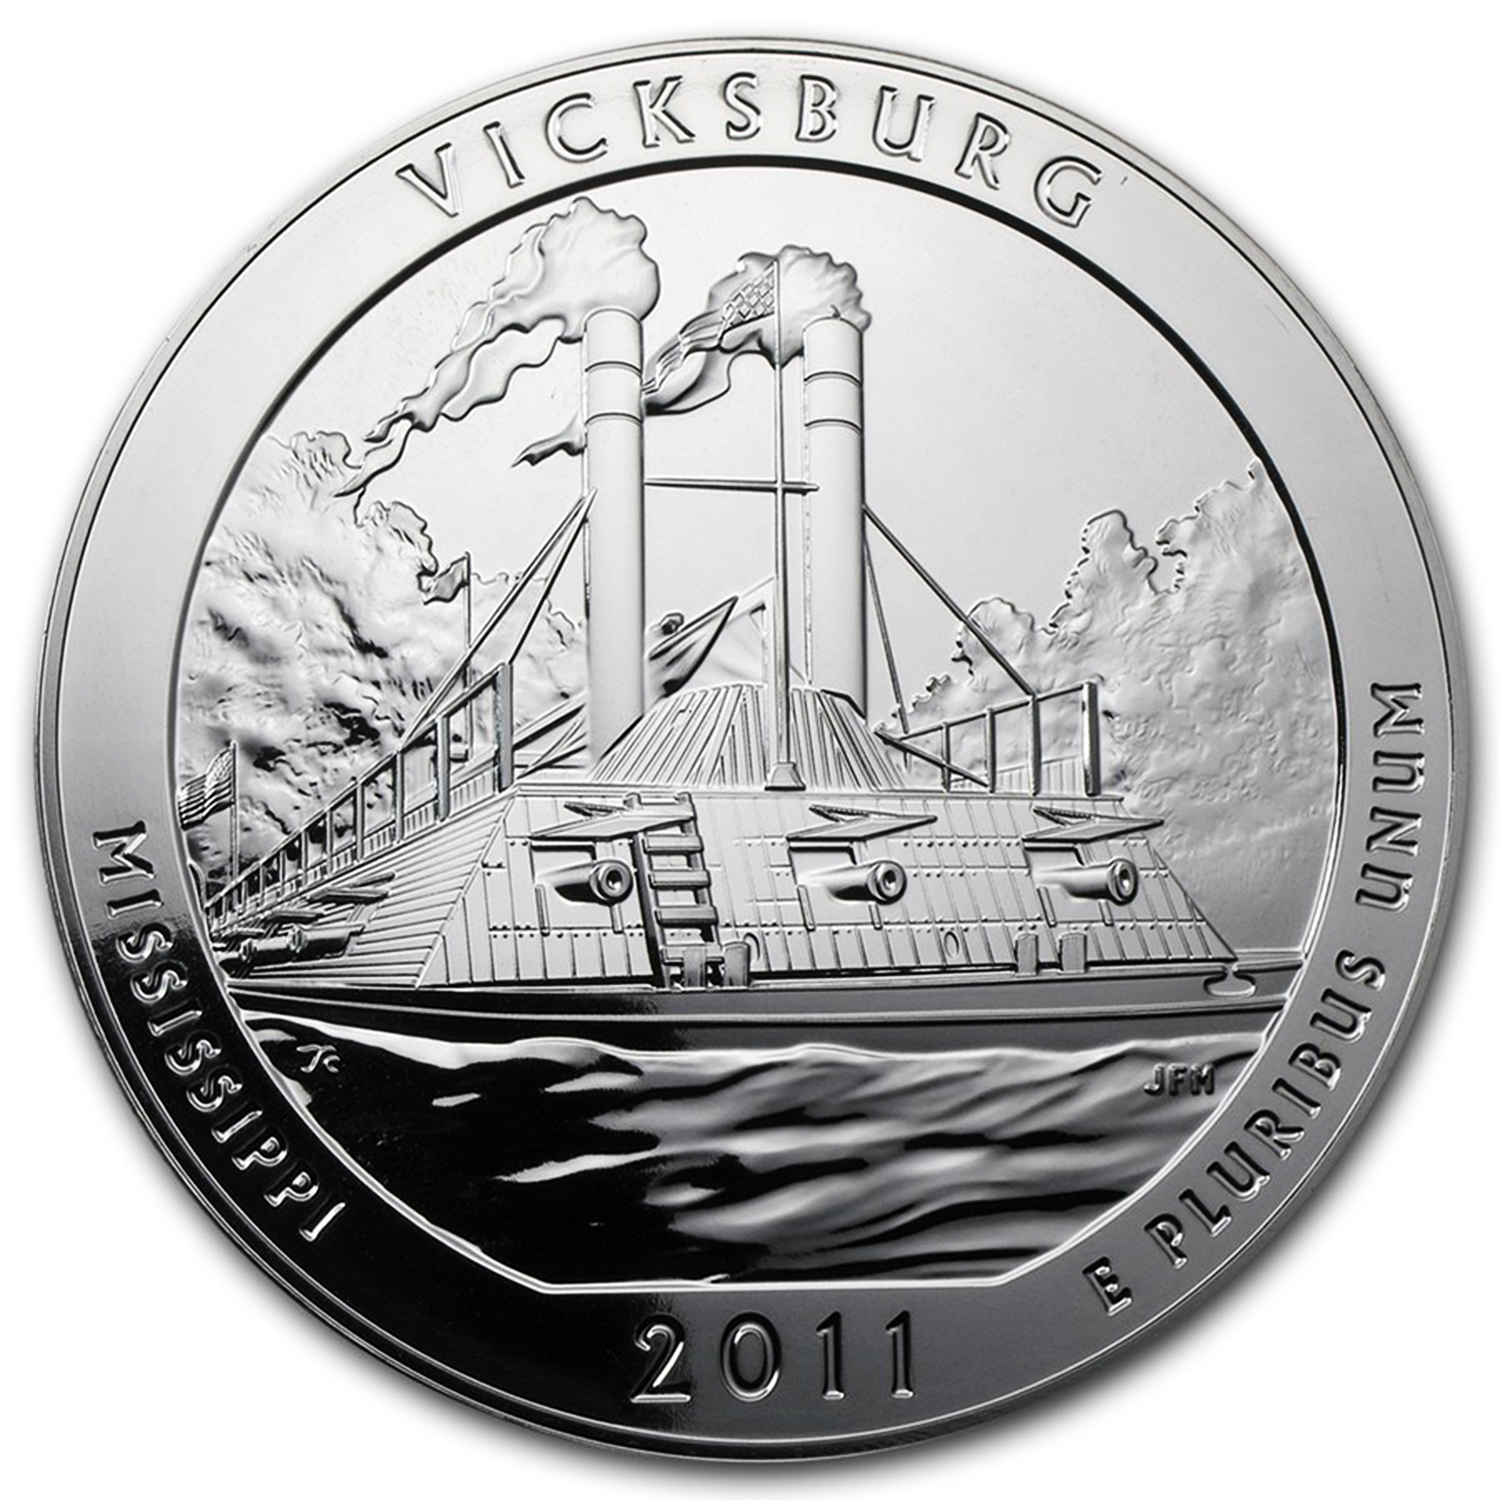 2011 5 oz Silver ATB - Vicksburg National Military Park, MS